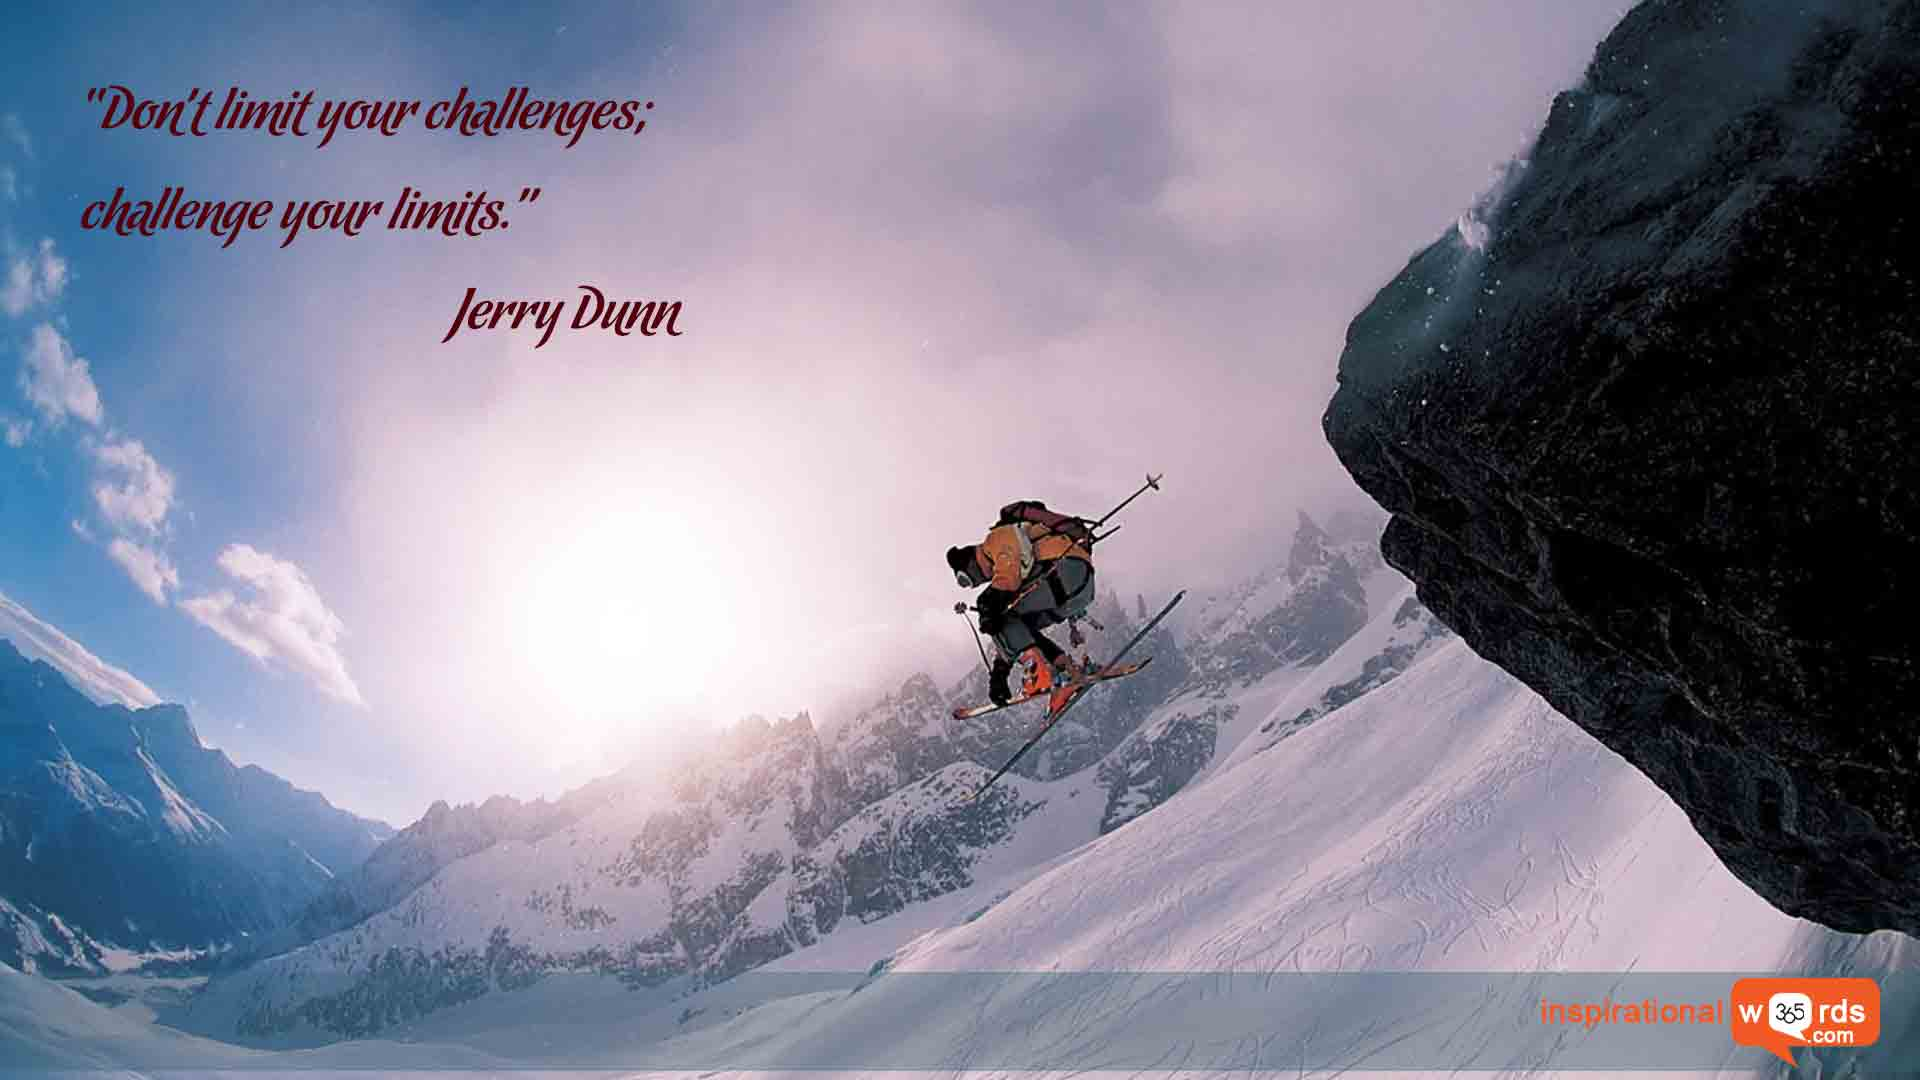 Inspirational Wallpaper Quote by Jerry Dunn